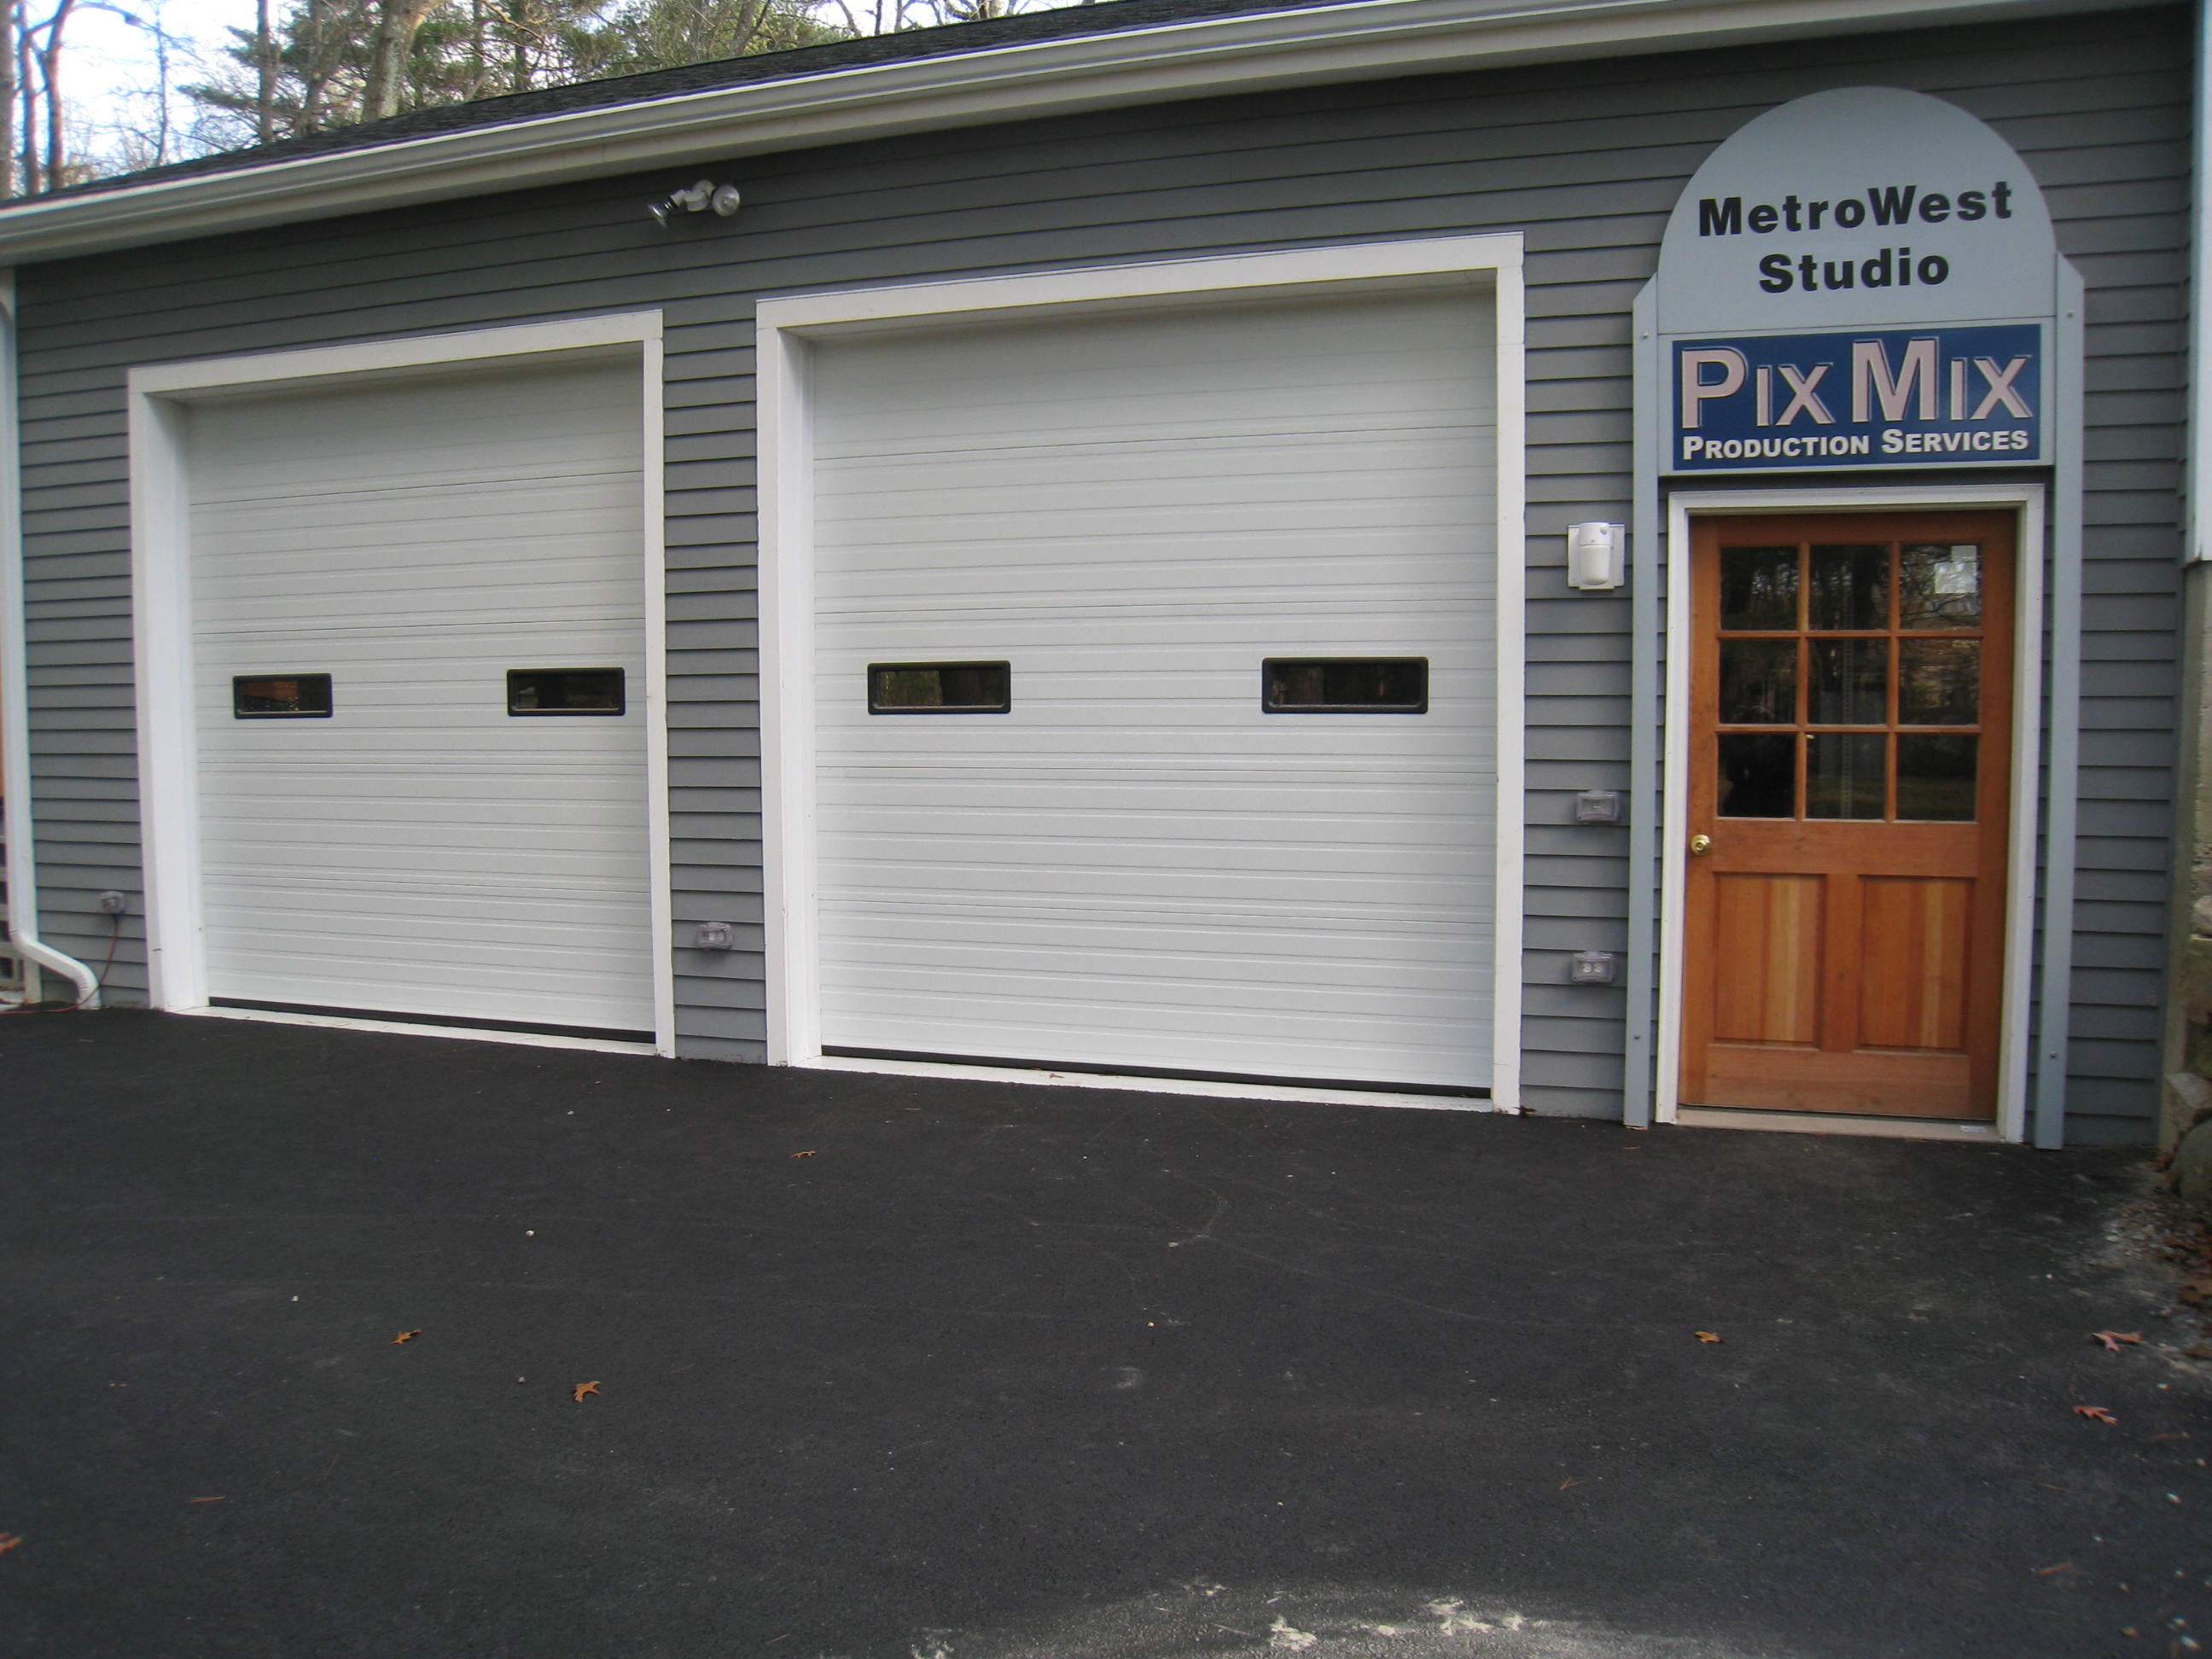 Large Doors Allow Easy Load In & Out